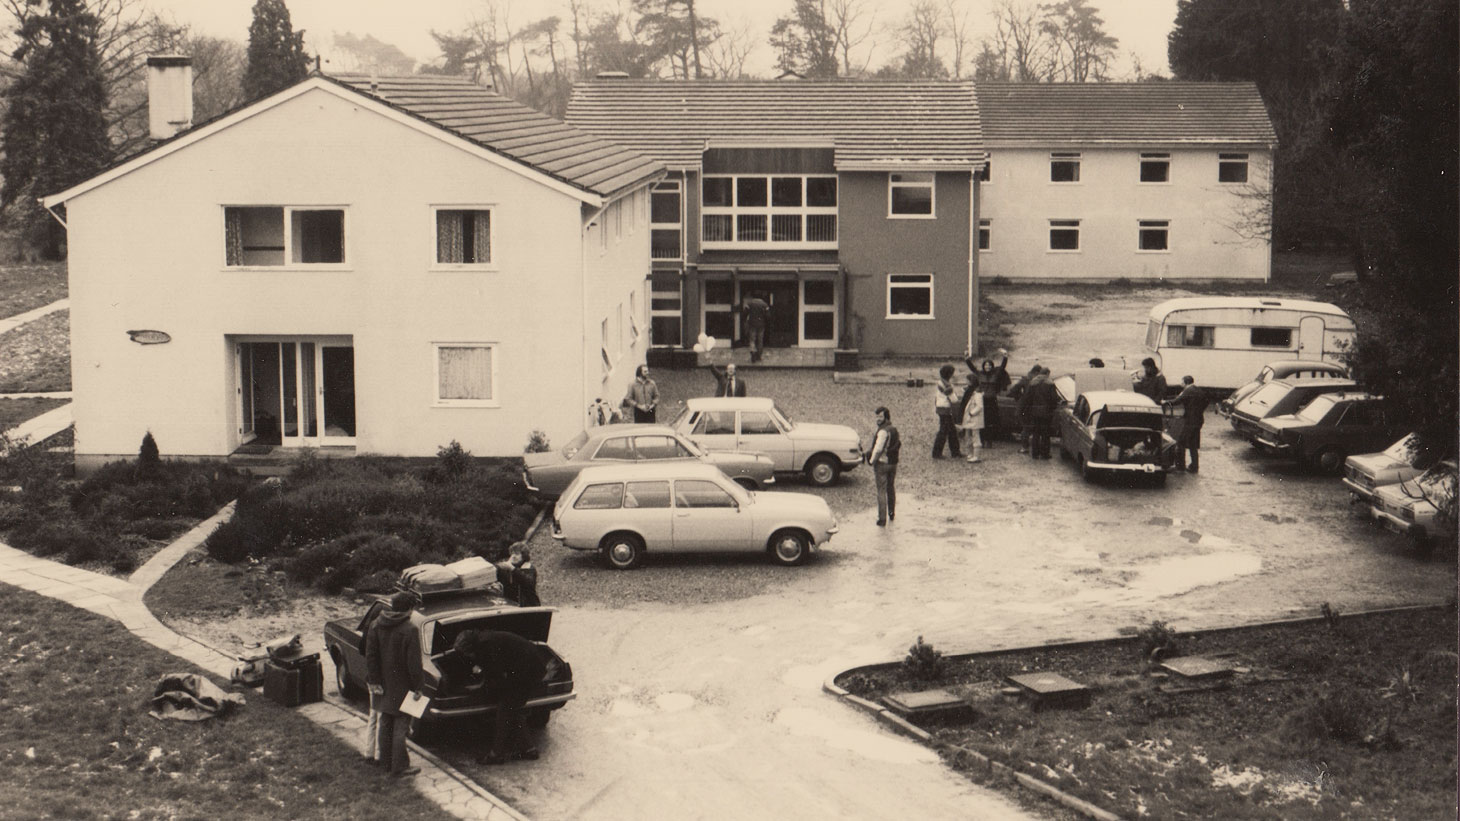 Student accommodation in the 1970s